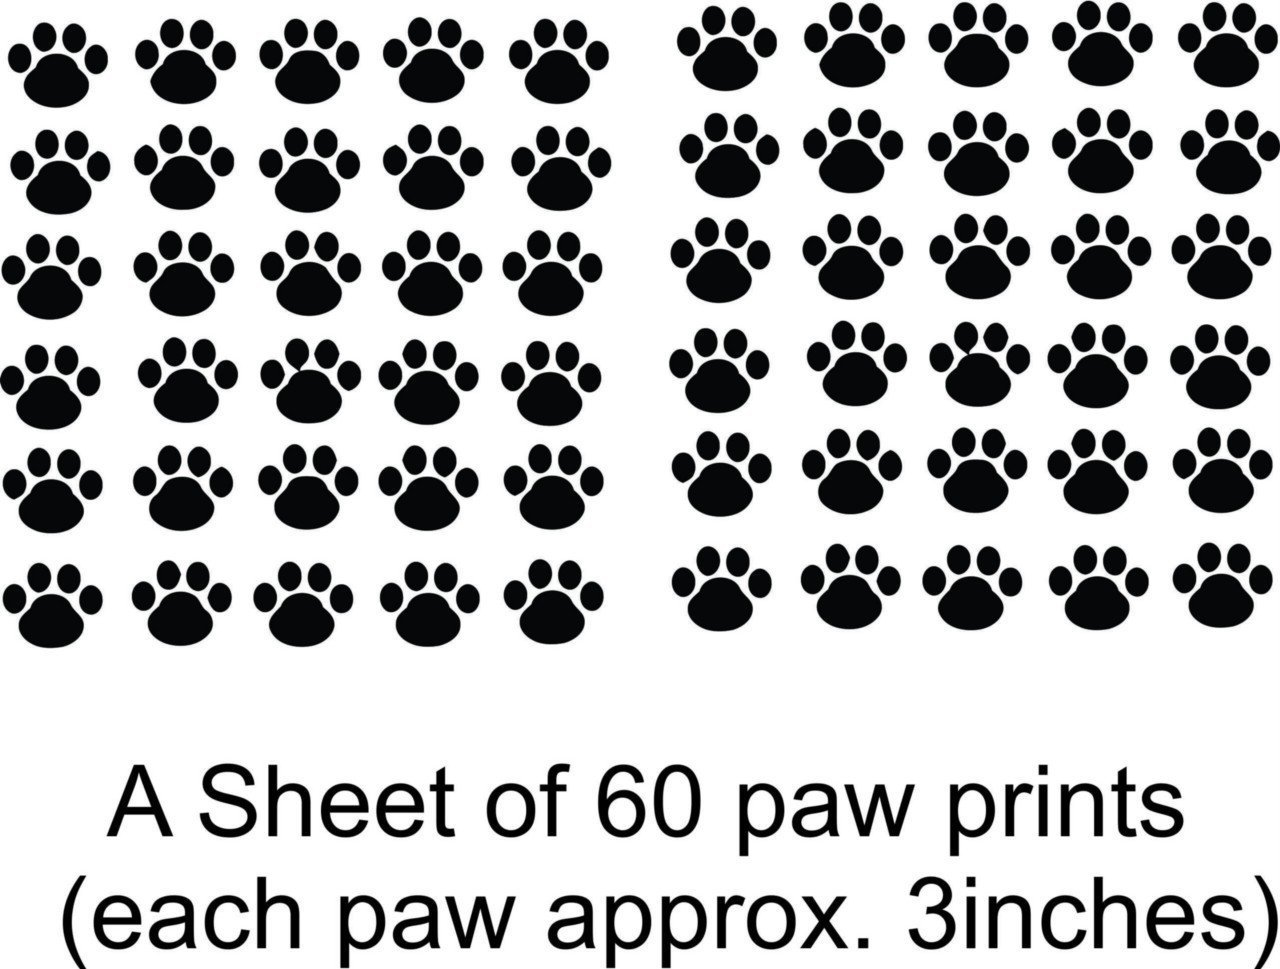 Design with Vinyl CK-Decal-41-20 Decor Item Cat Dog 60 Animal Paw Prints Living Room Bedroom Picture Art Peel and Stick Sticker Vinyl Wall Decal, 21-Inch x 31-Inch, Black